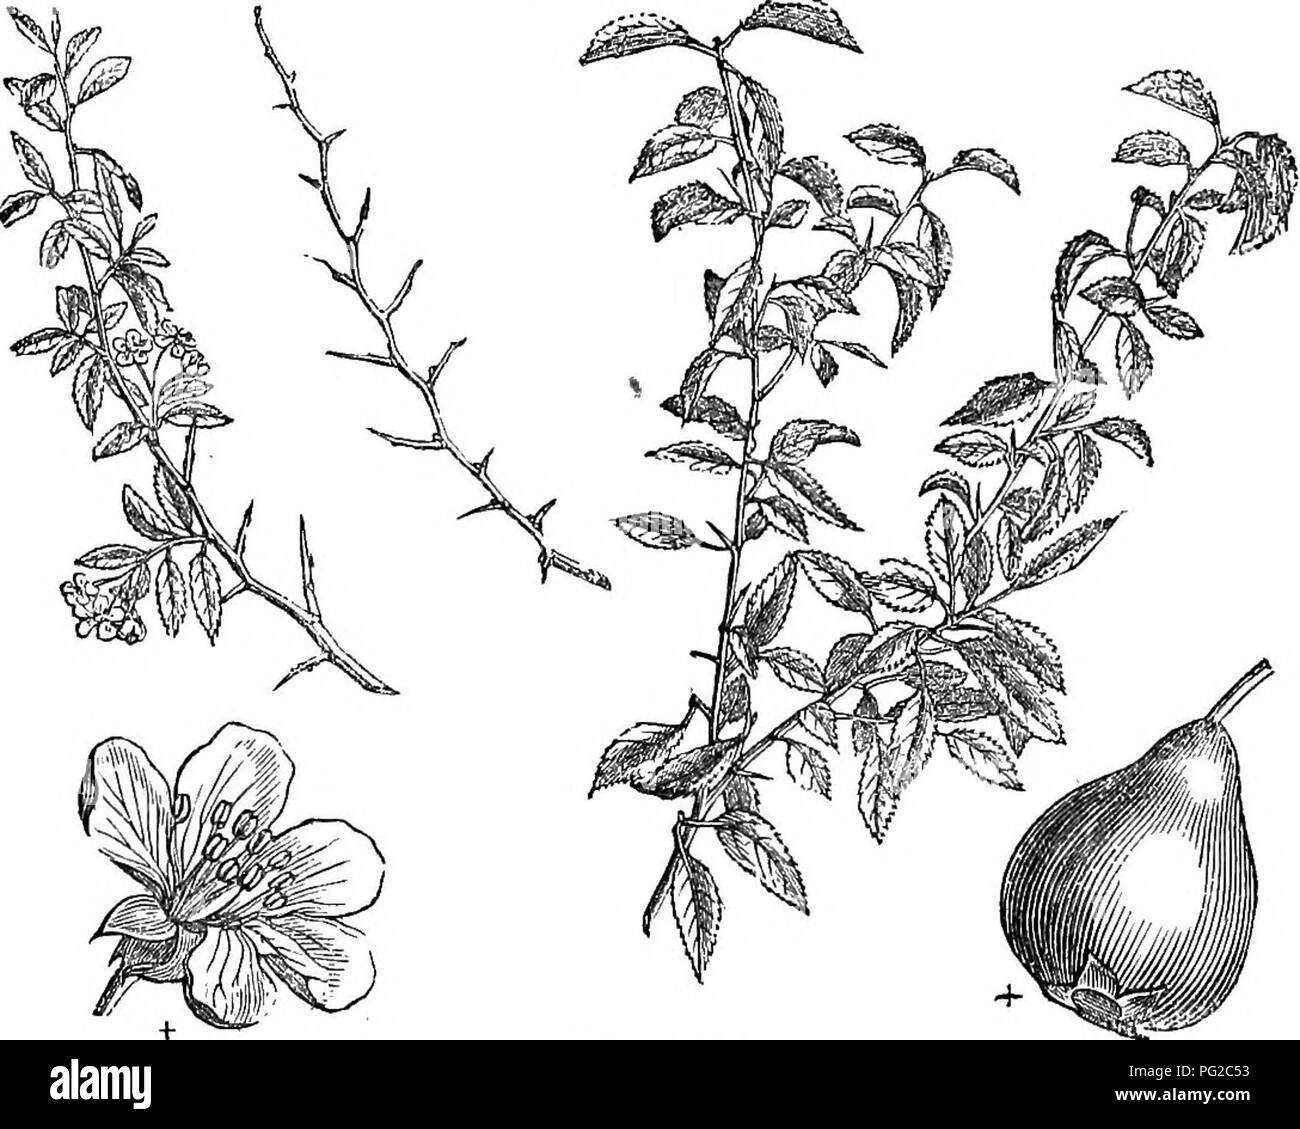 Ic 1 And 2 Stock Photos Images Alamy The Iron Bar In Uquot Shape With Dimensions As Shown Diagram Trees Shrubs An Abridgment Of Arboretum Et Fruticetum Britannicum Containing